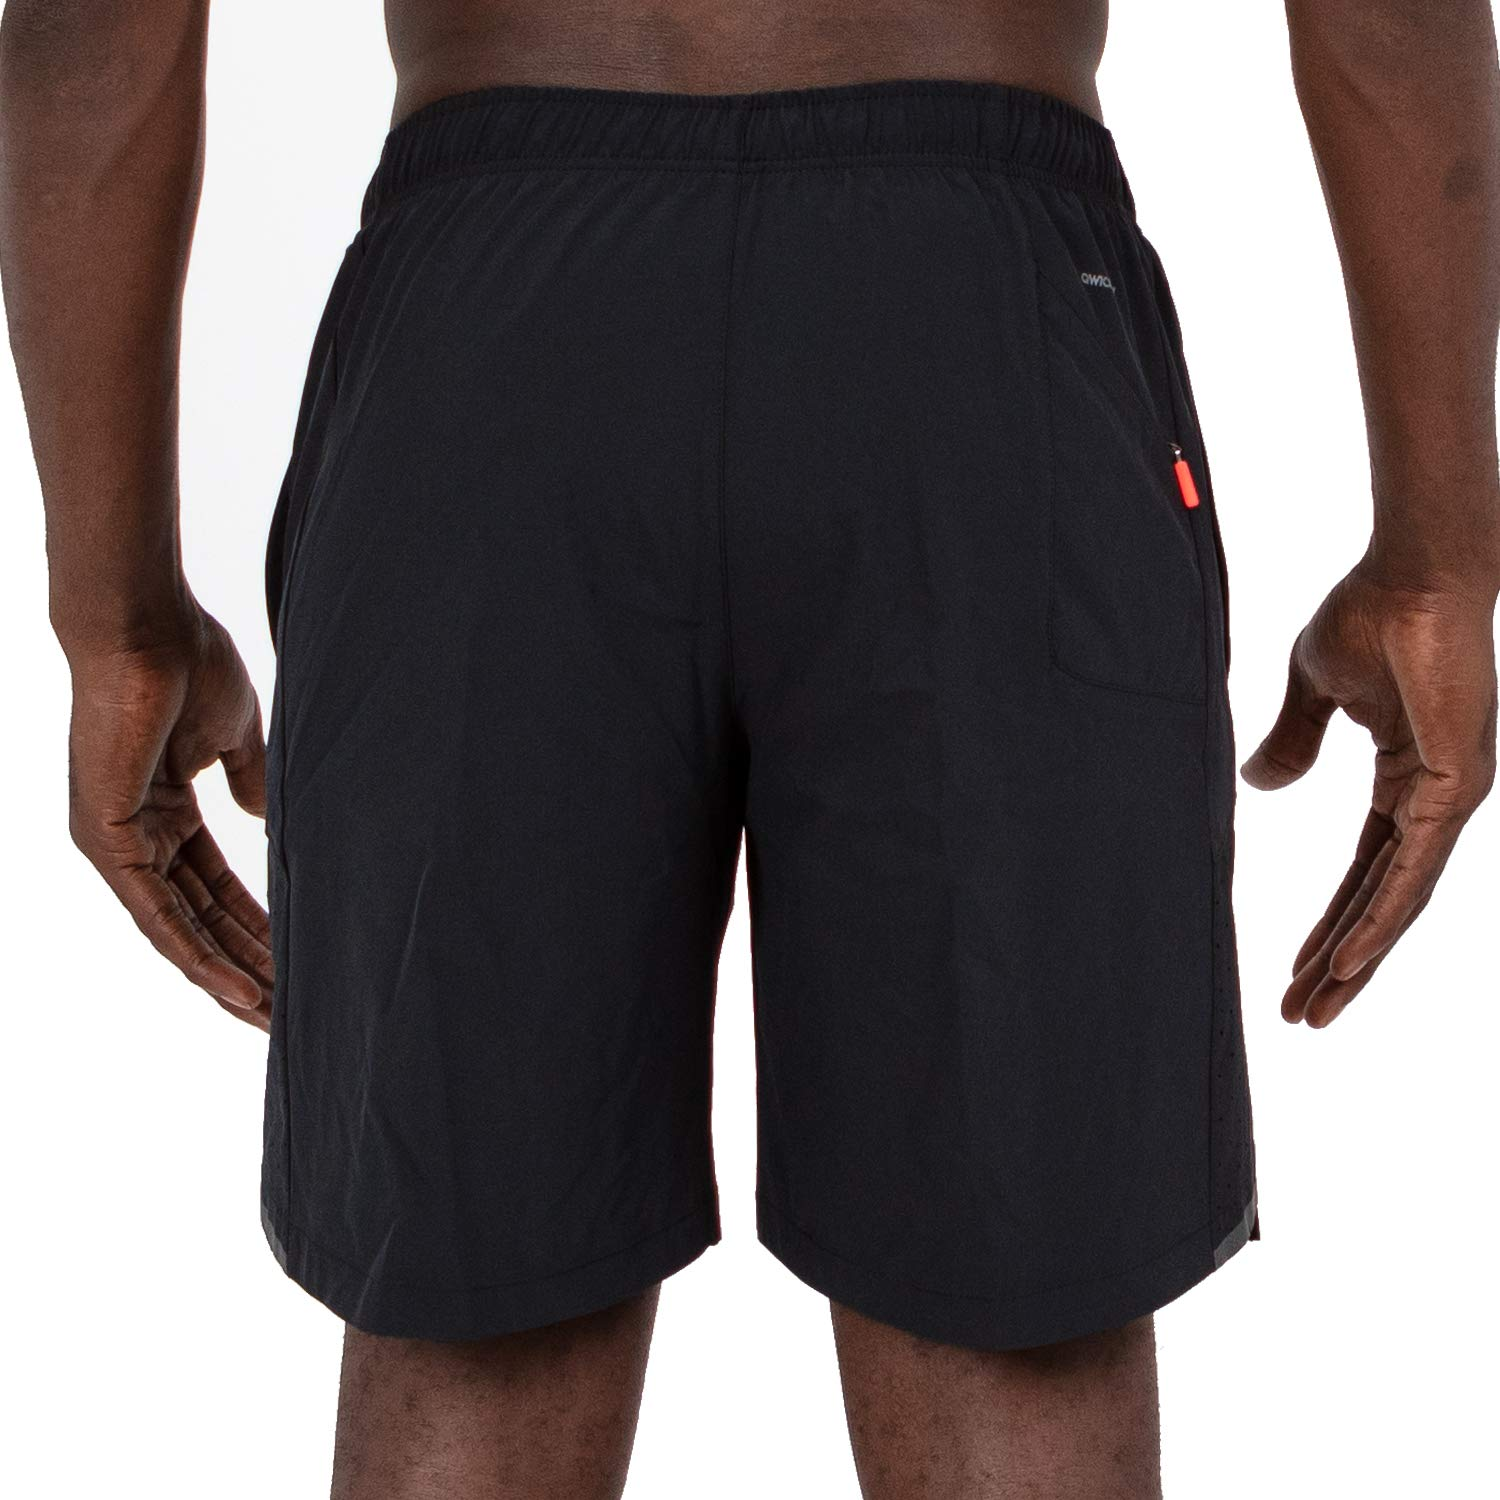 2c461e862d Amazon.com: Skora Men's Two in One and Unlined Athletic Running Shorts with  Pockets and Zip Back Pocket: Clothing